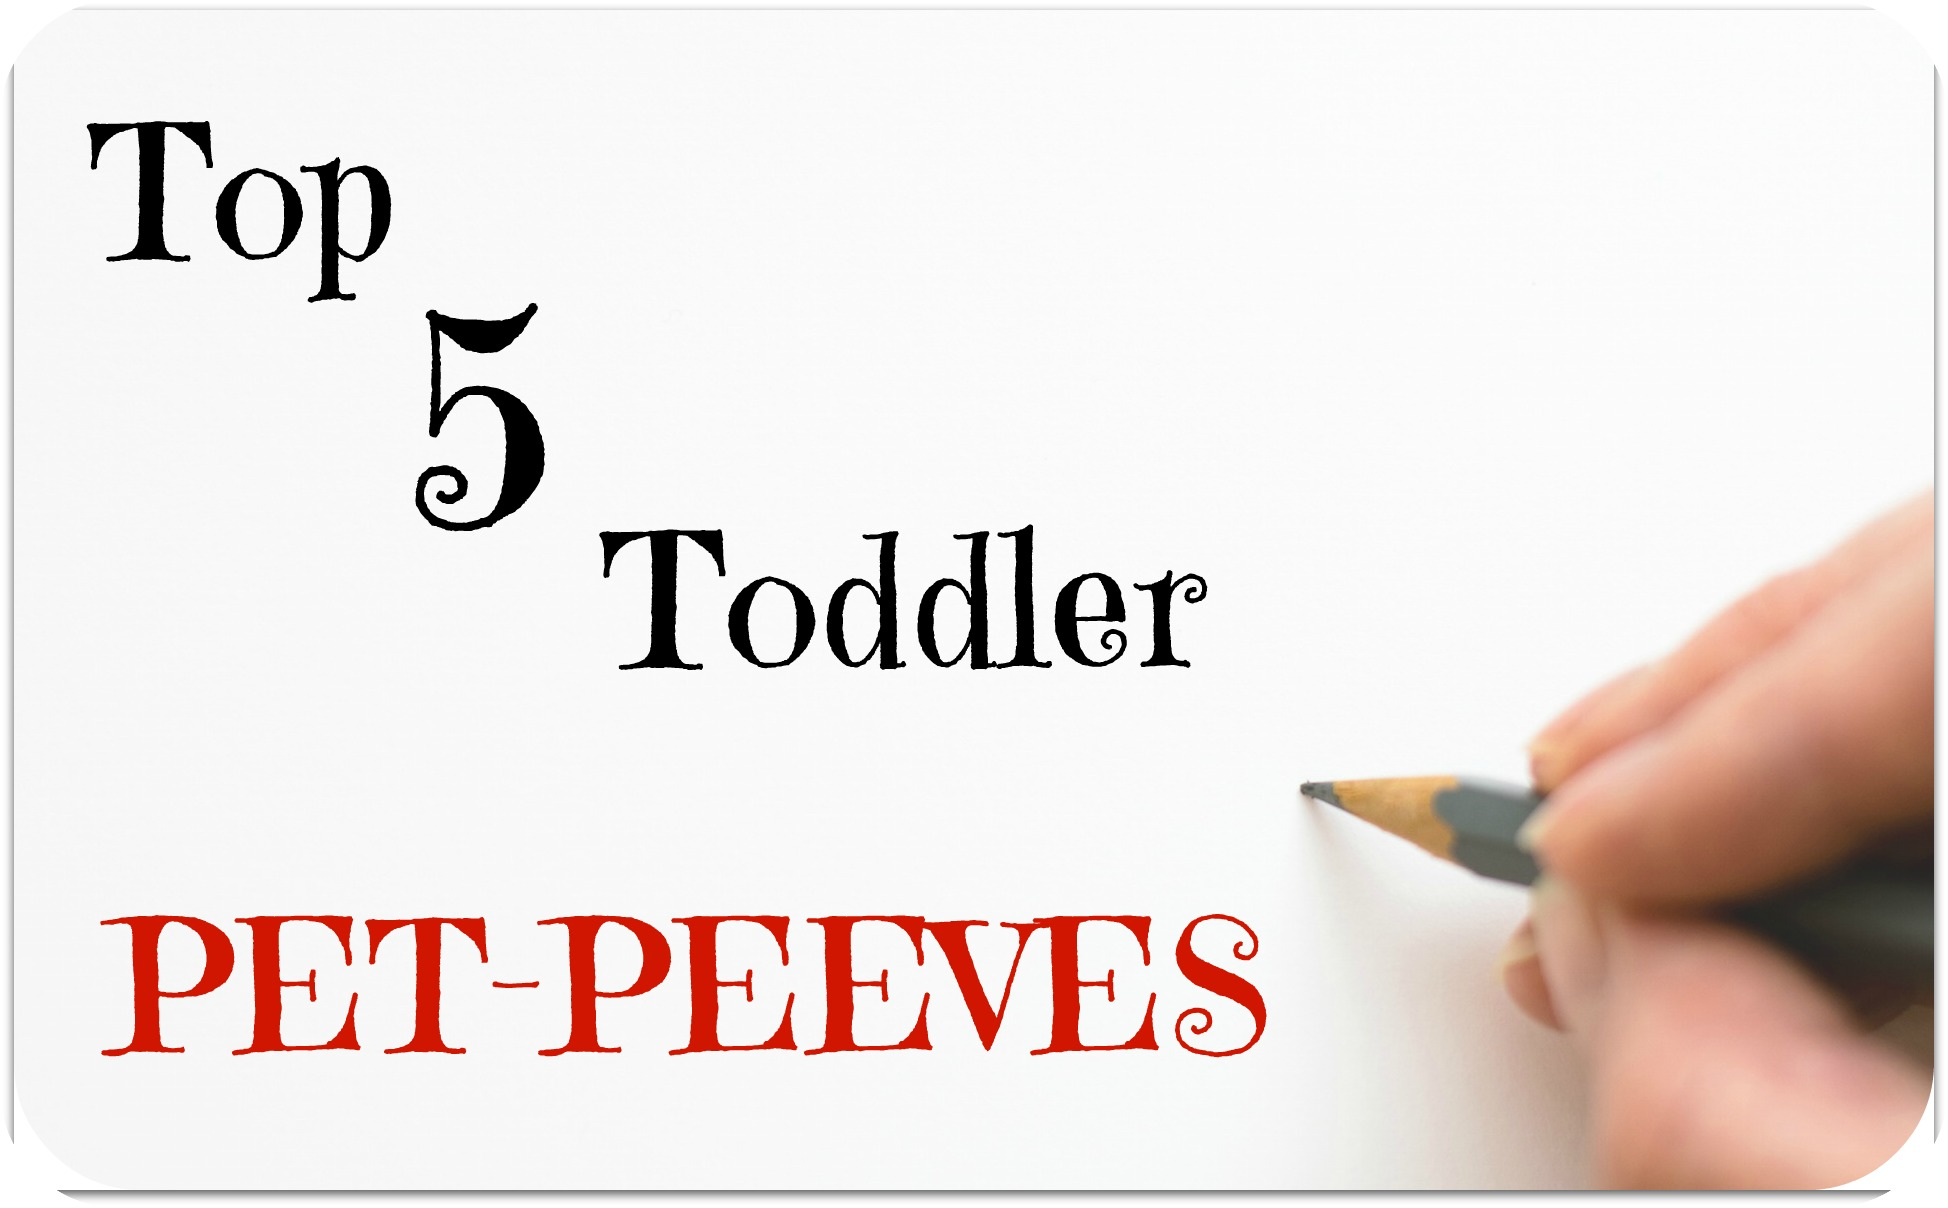 Top 5 Toddler Pet-Peeves